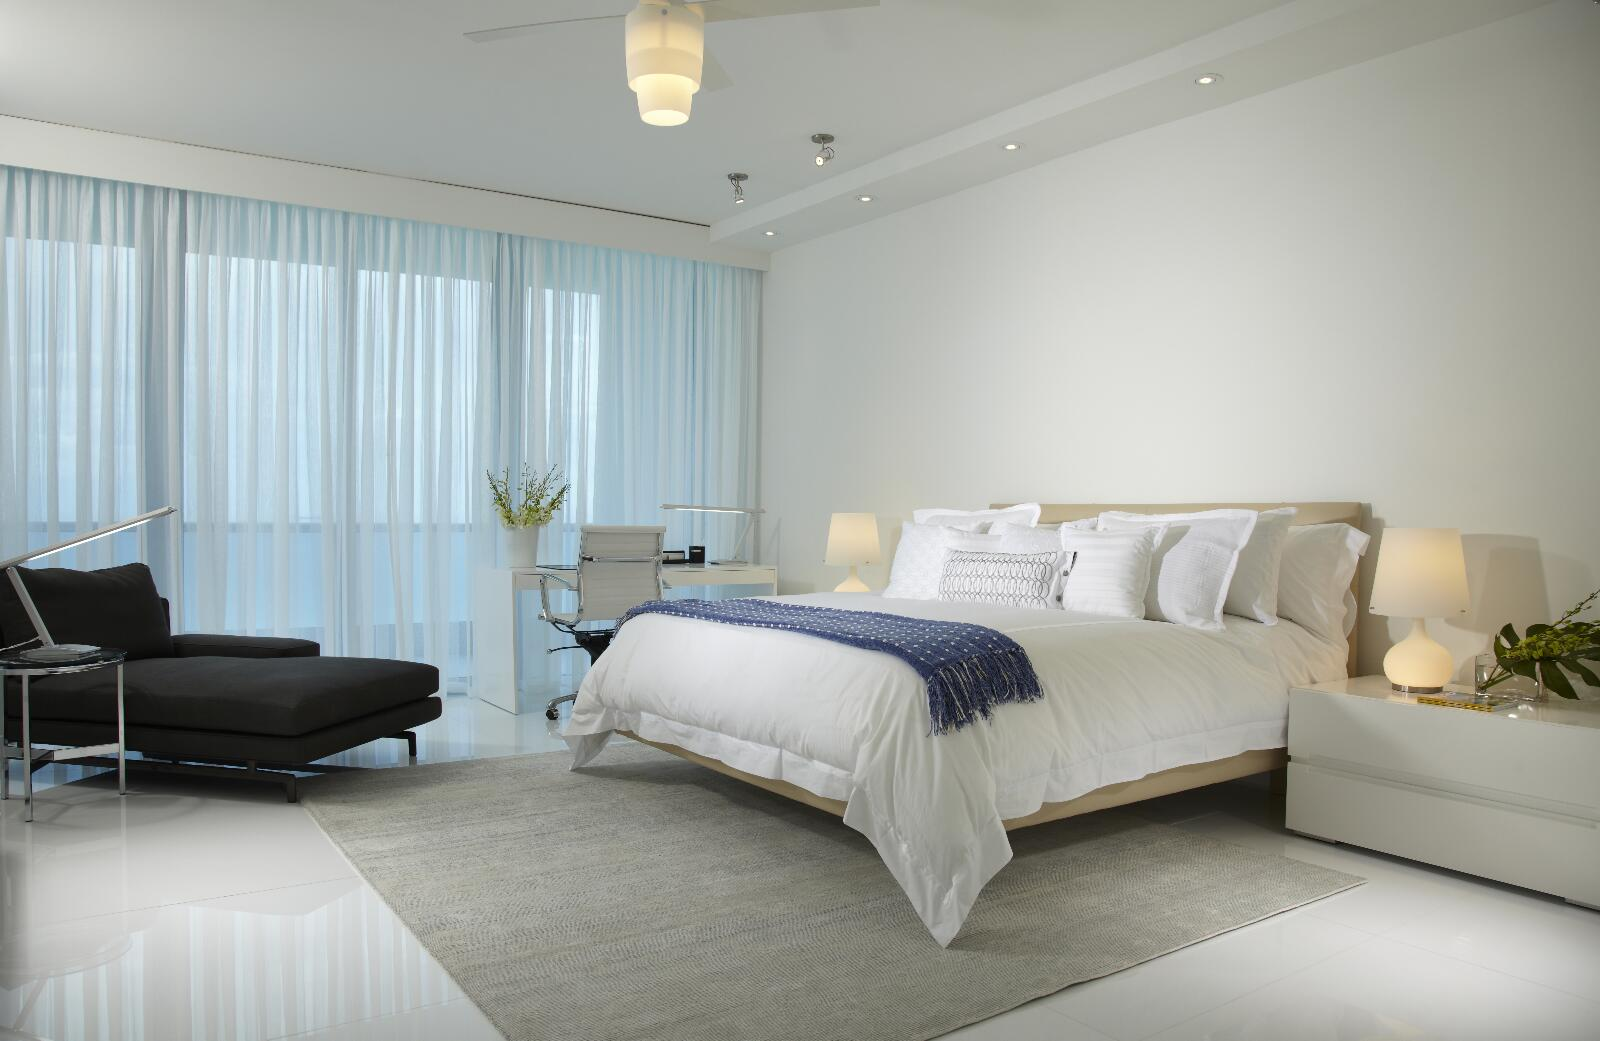 An Interior Design Agency In Miami Provides Expertise In The Bedroom And Bathroom